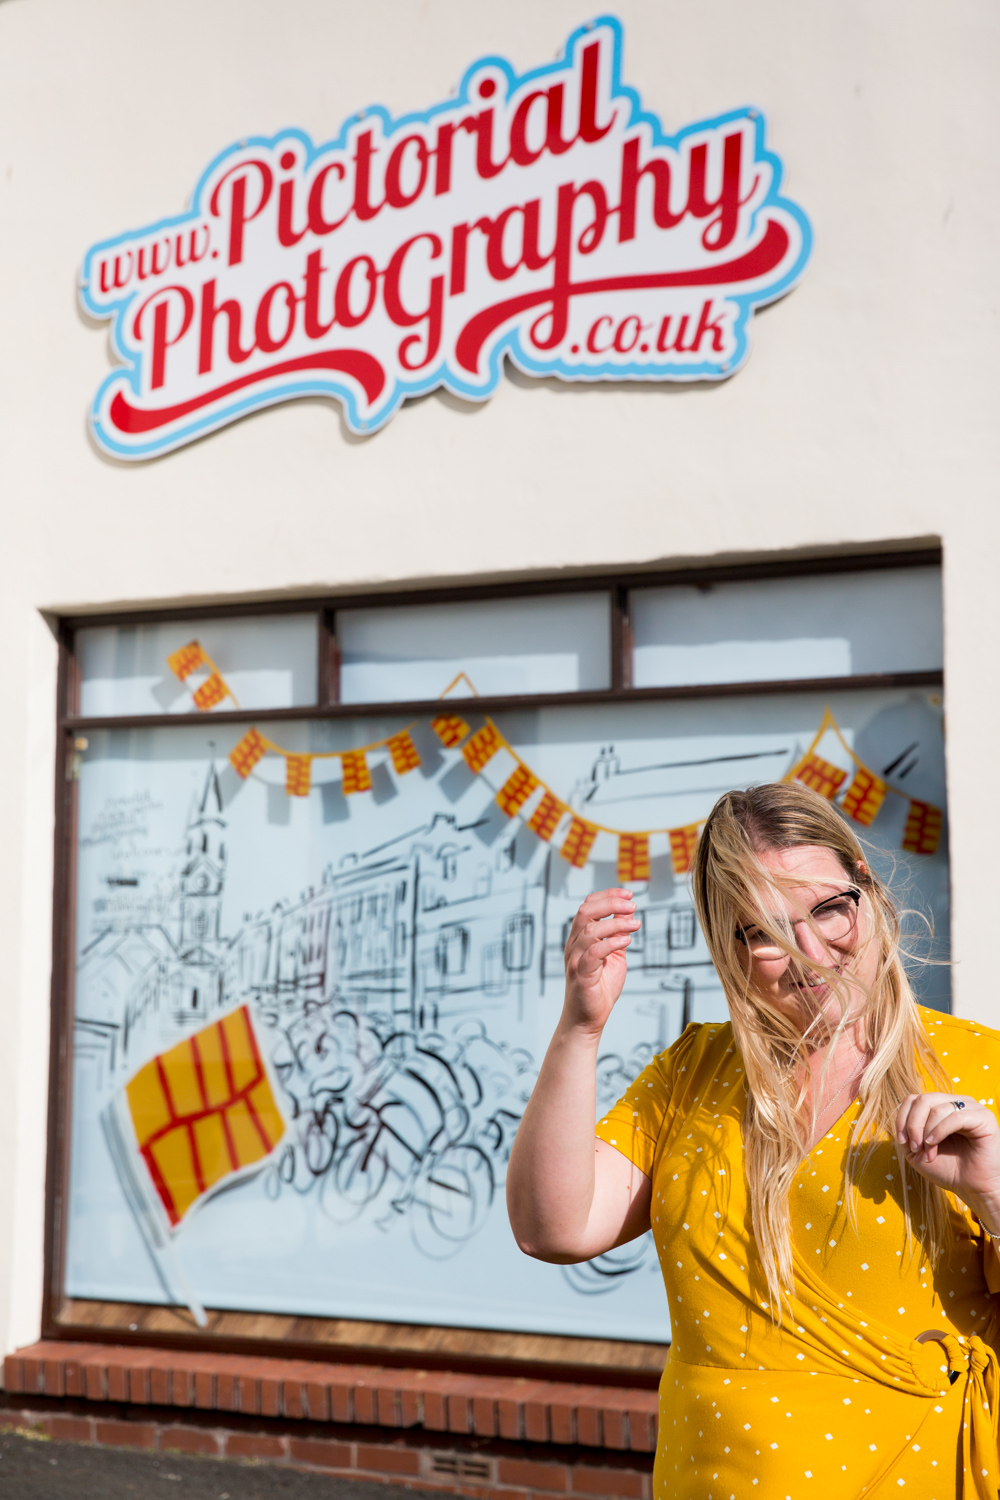 1-Katie_Draws_Pictorial_Photography_Chappell_Tour_of_Britian_window-painting-live-illustration-photography-graphic-mural-presentation-H45A6330.jpg